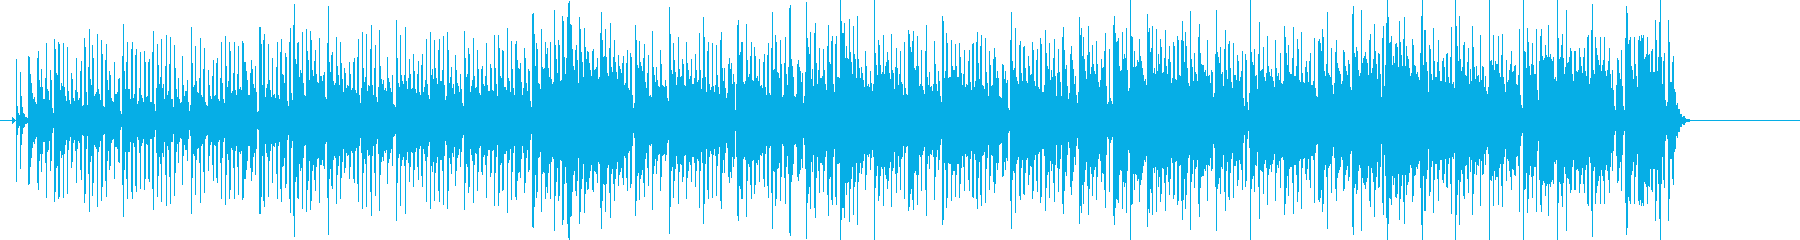 Cheerful and nimble southern country Latin BGM's reproduced waveform